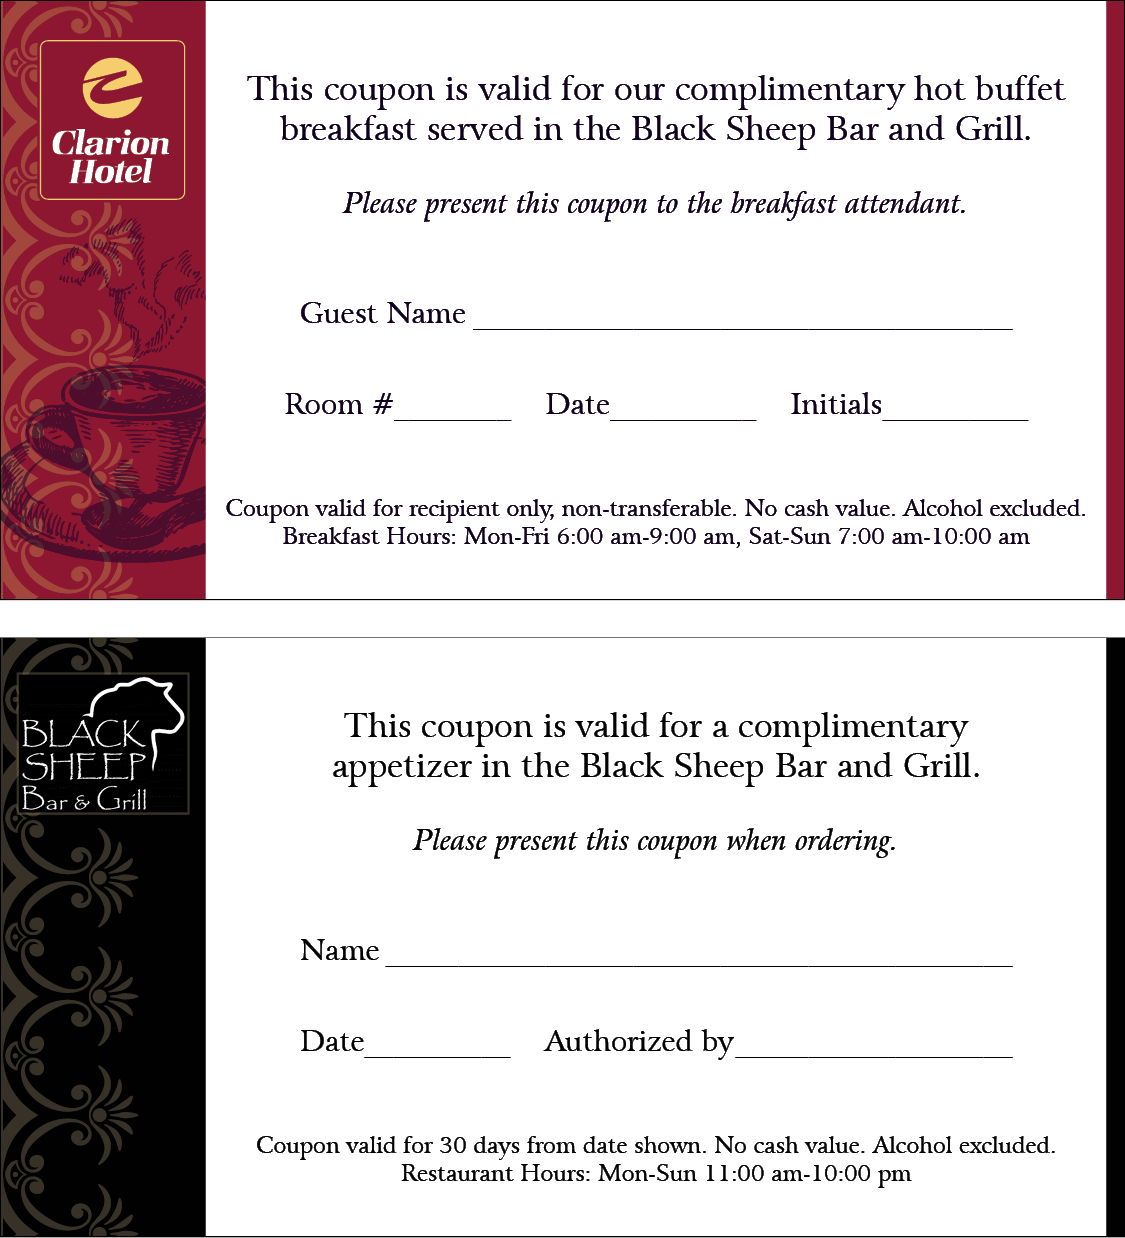 Coupons & Gift Certificates :: Q's Printing and Design